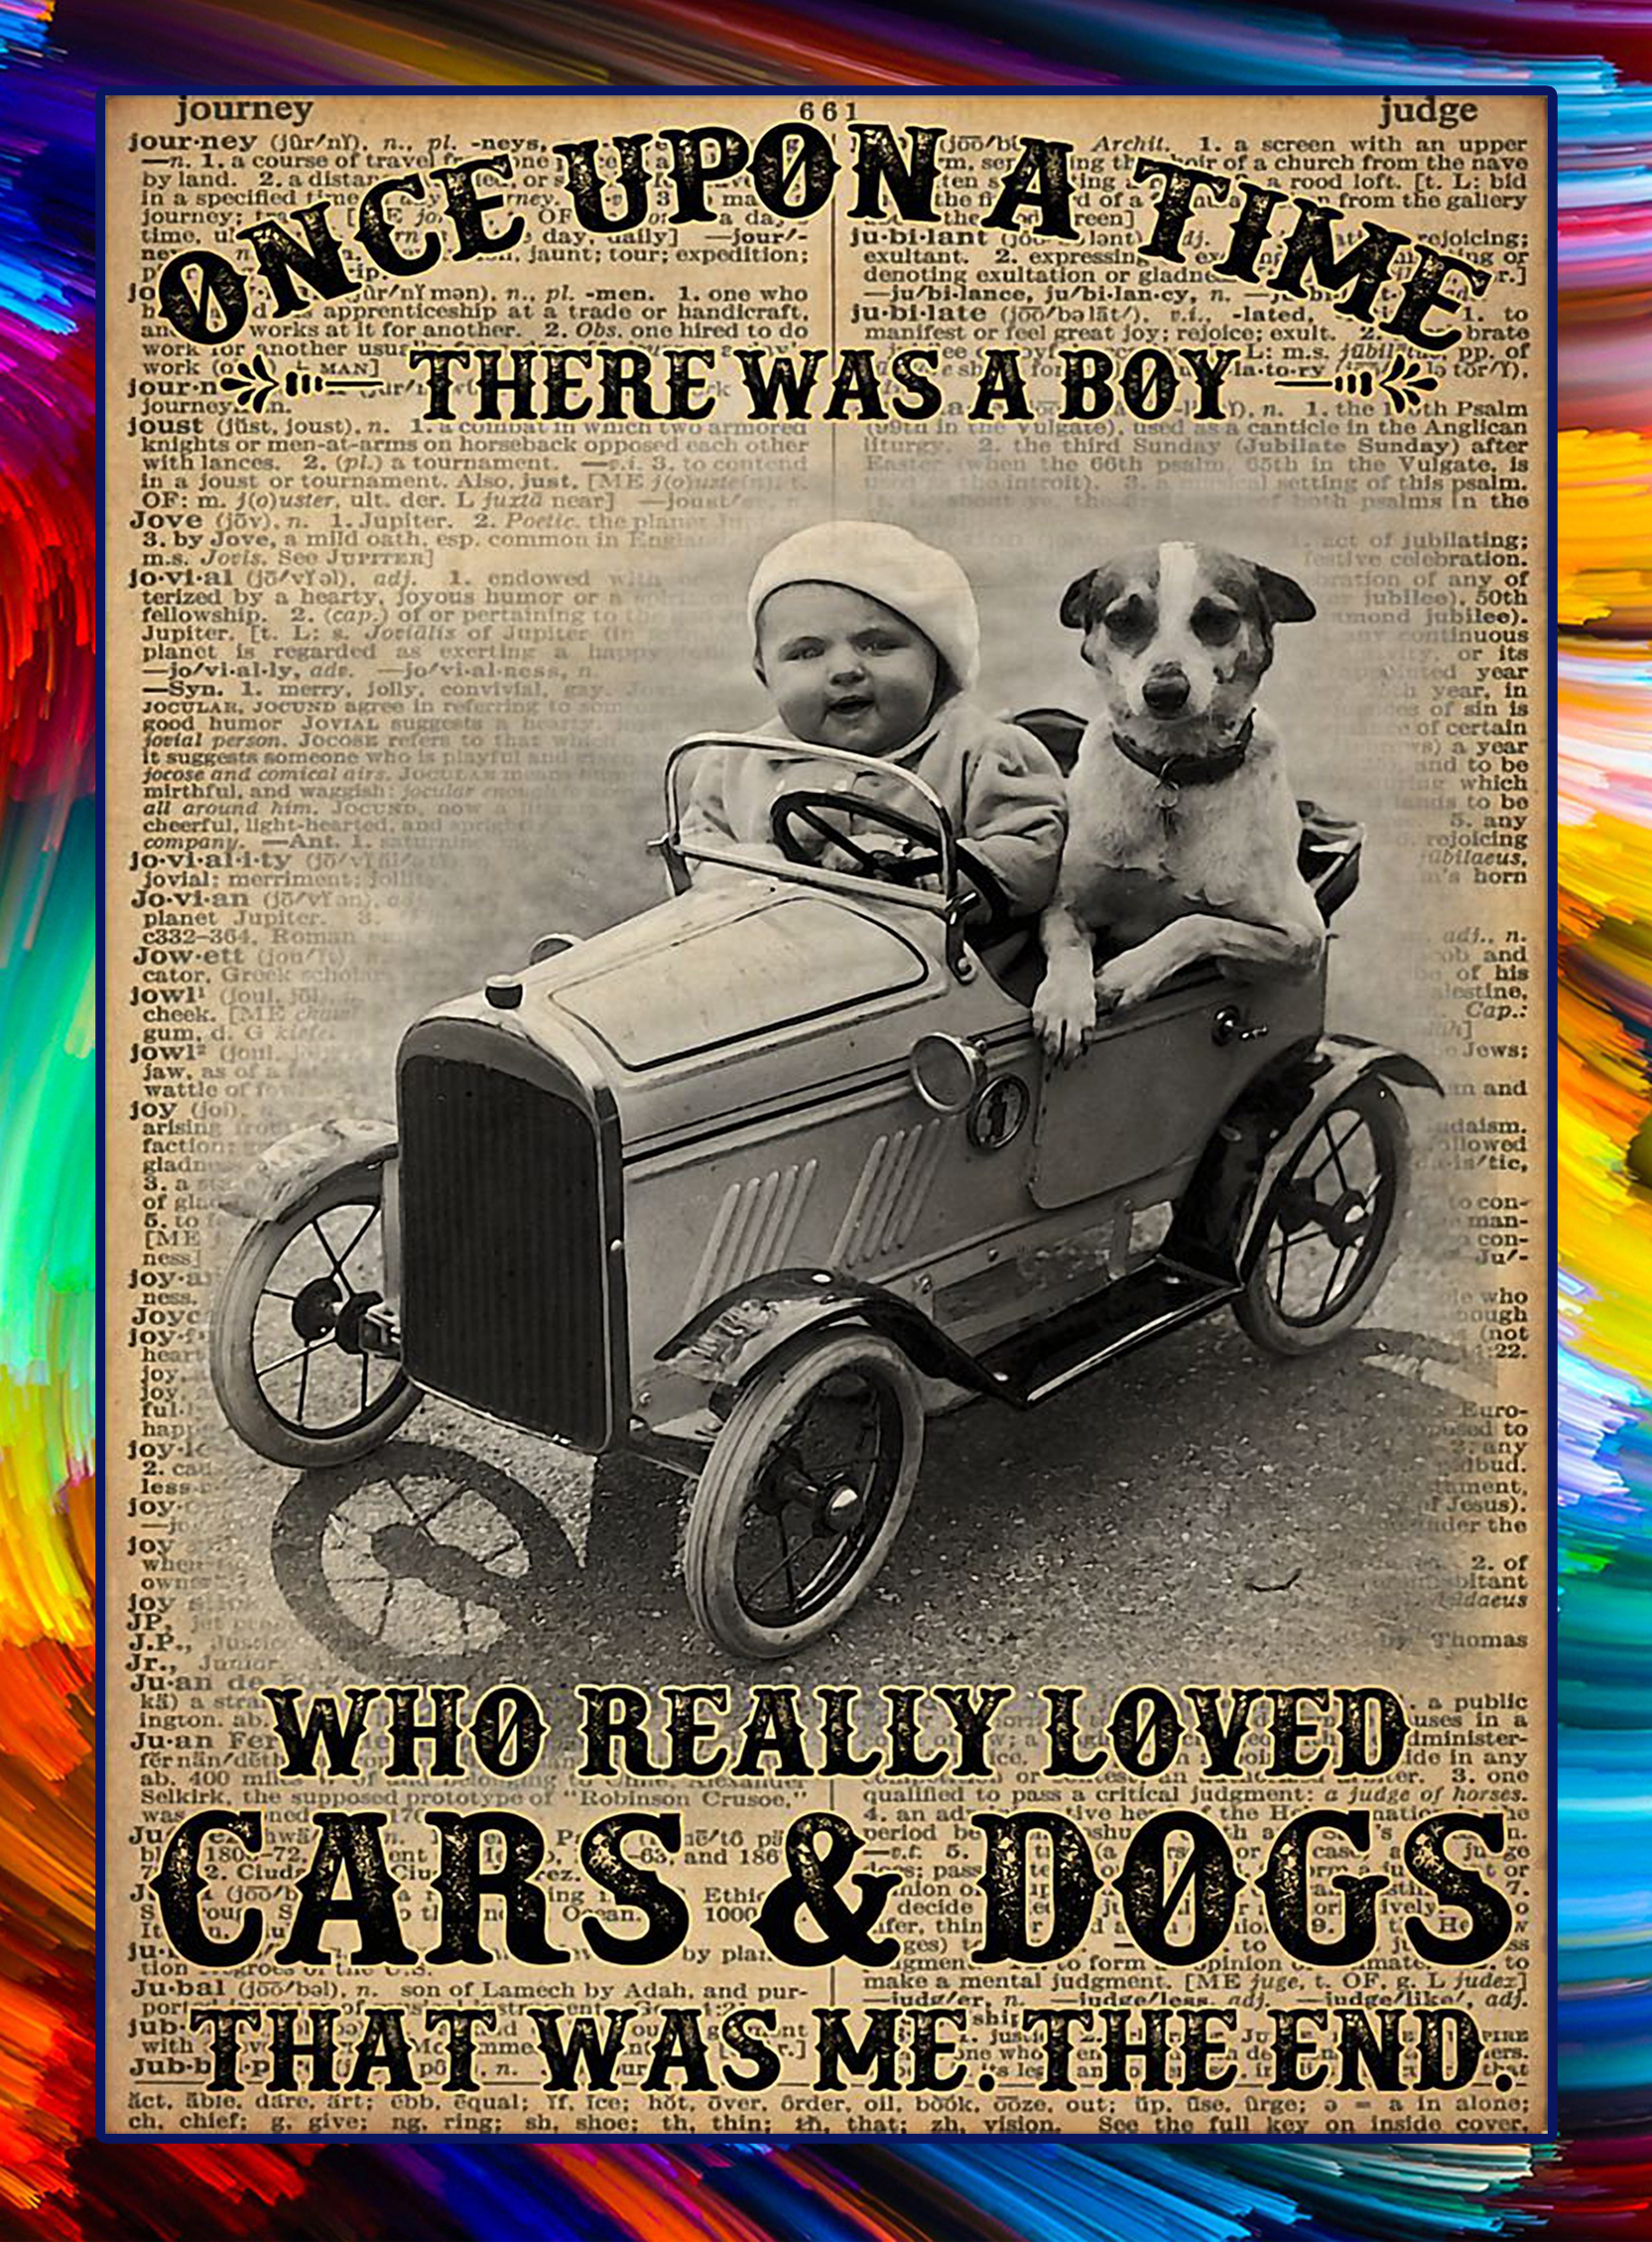 Once upon a time there was a boy who really loved cars and dogs poster - A1